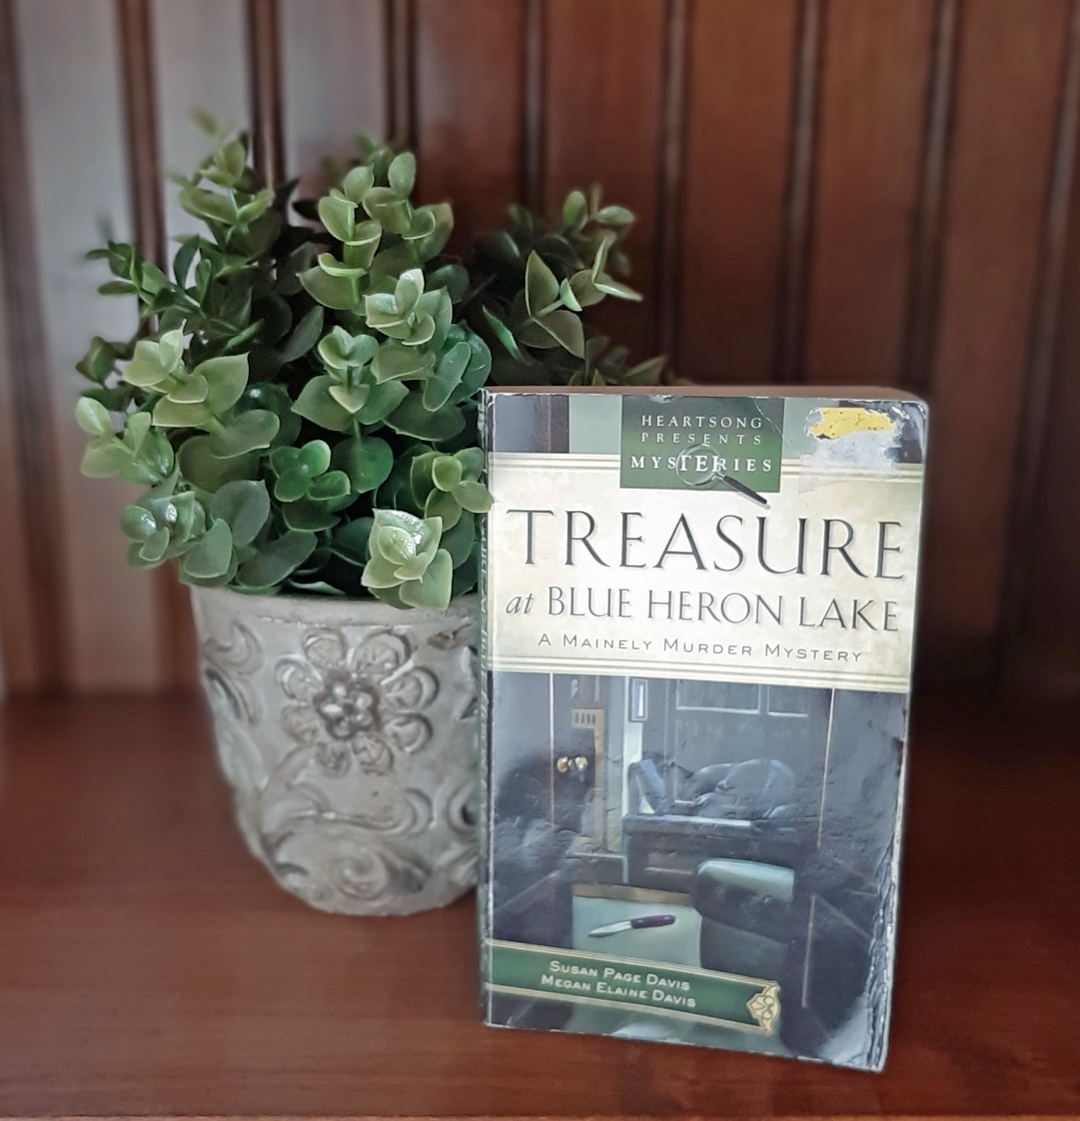 Susan Paige Davis – Treasure at Blue Heron Lake (A Mainely Murder Mystery)